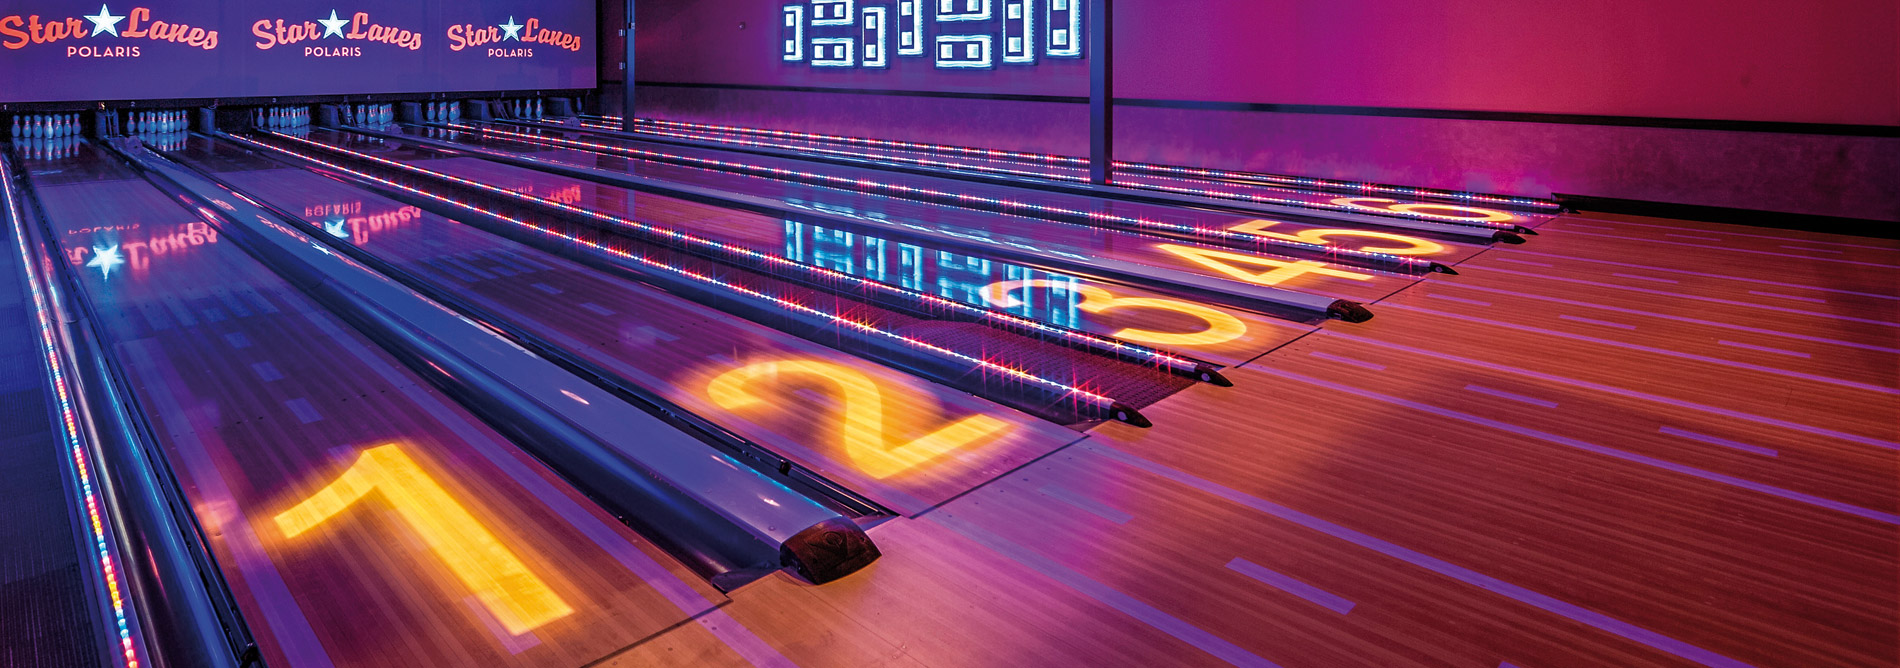 Bowling-QubicaAMF-lanes-Xtreme-Capping-Lights-banner.jpg